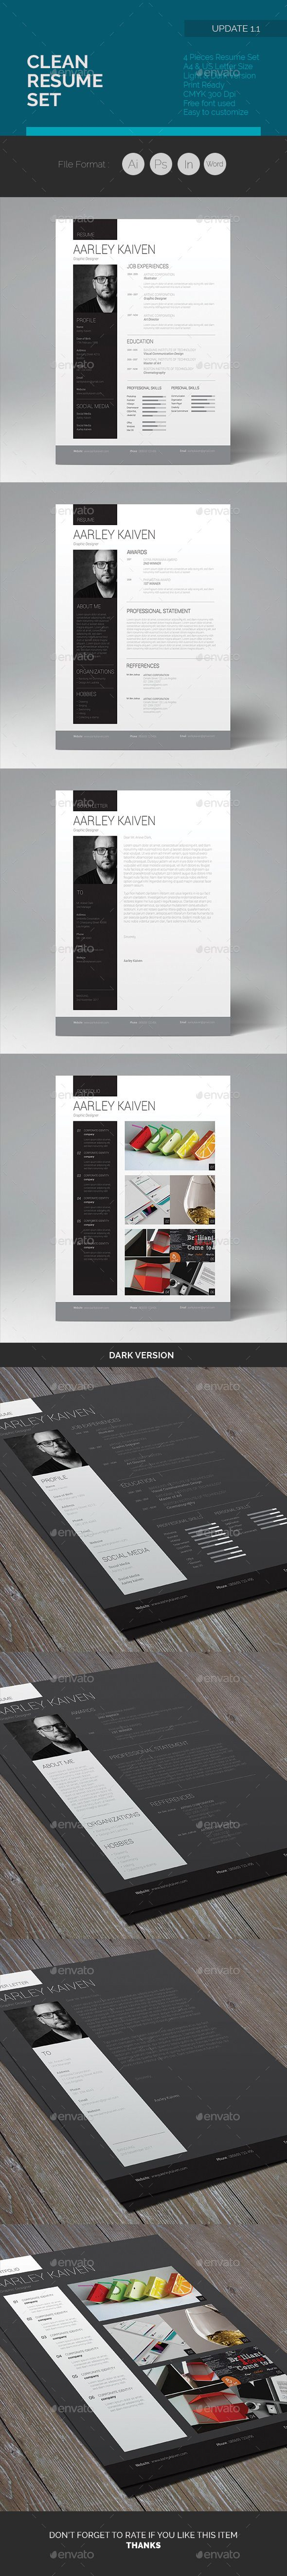 Best 25 Cv Design Ideas On Pinterest Layout Cv Cv Template And